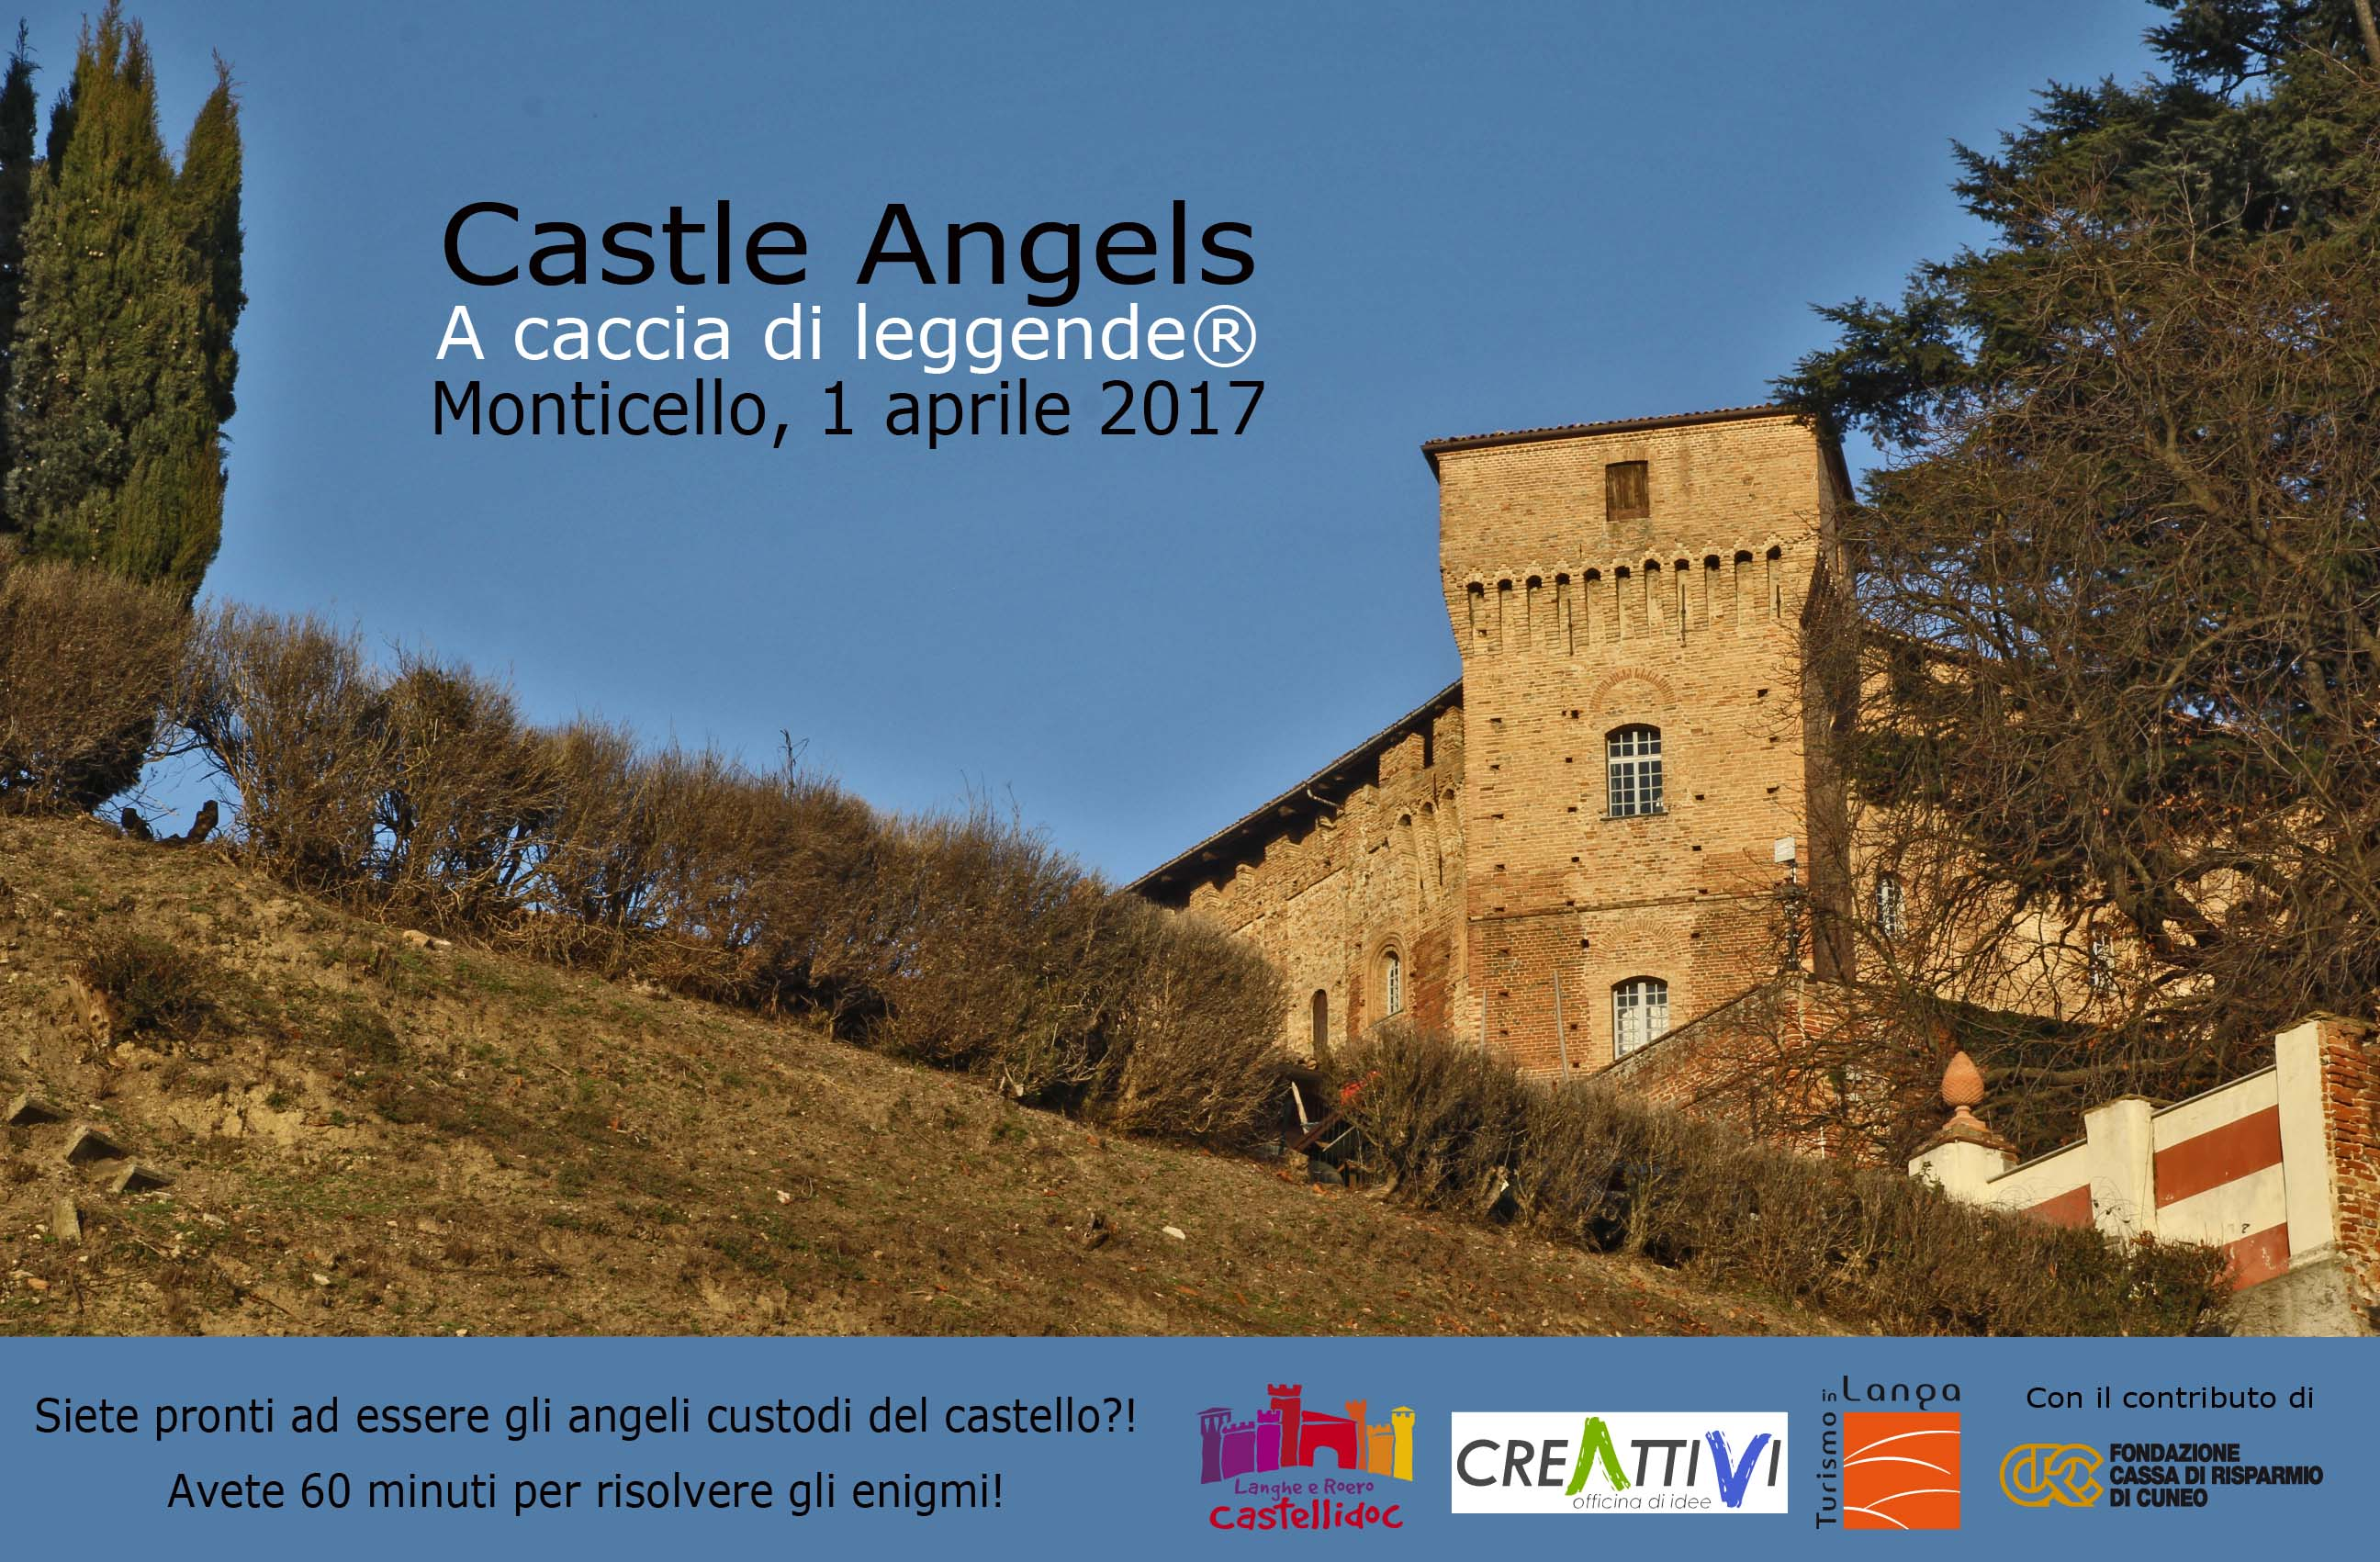 castle-angels-monticello-bozza-promo-nl